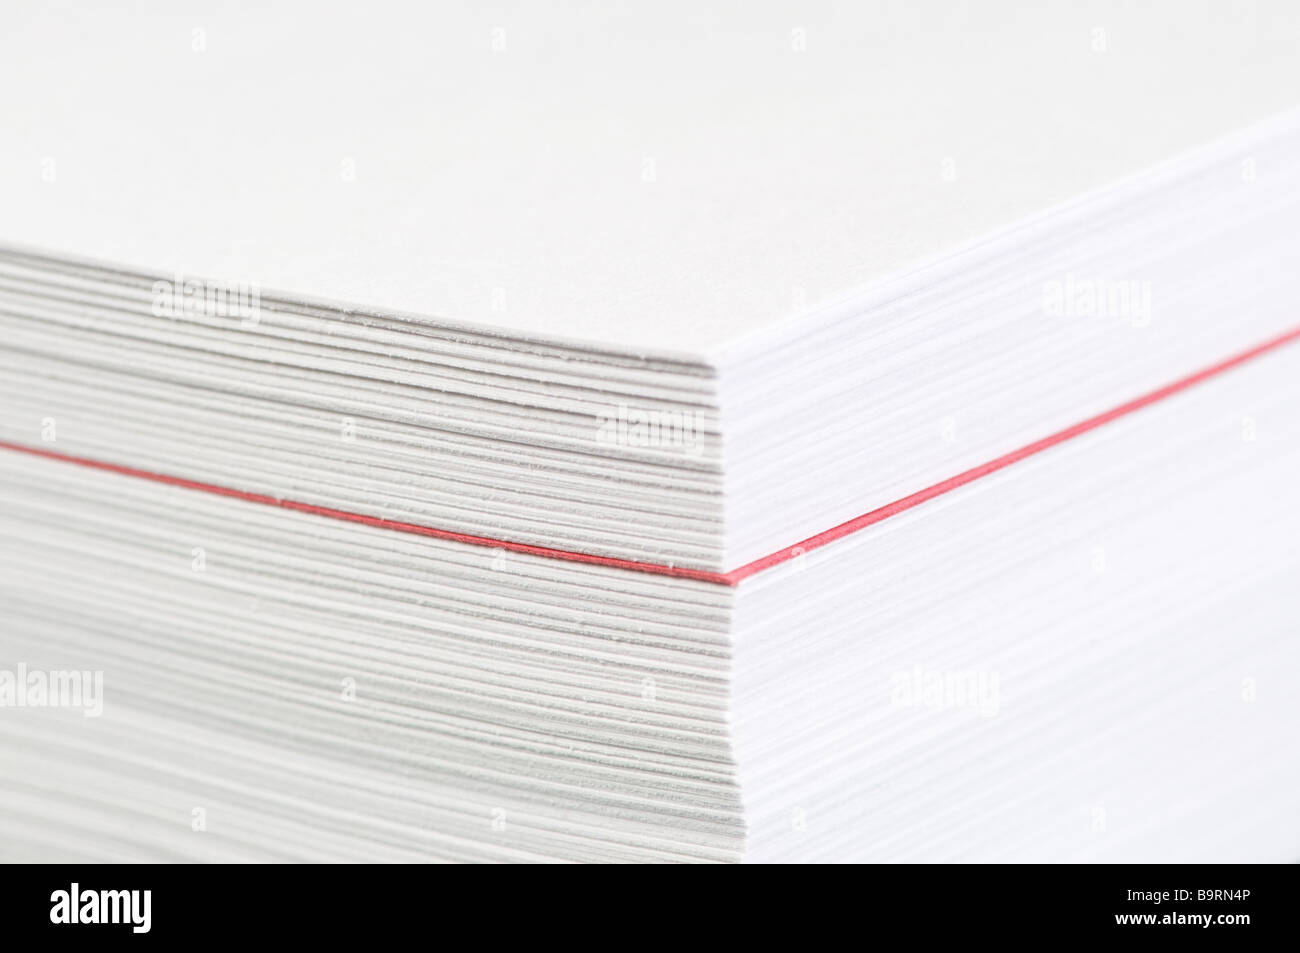 Pile of printer paper with a red